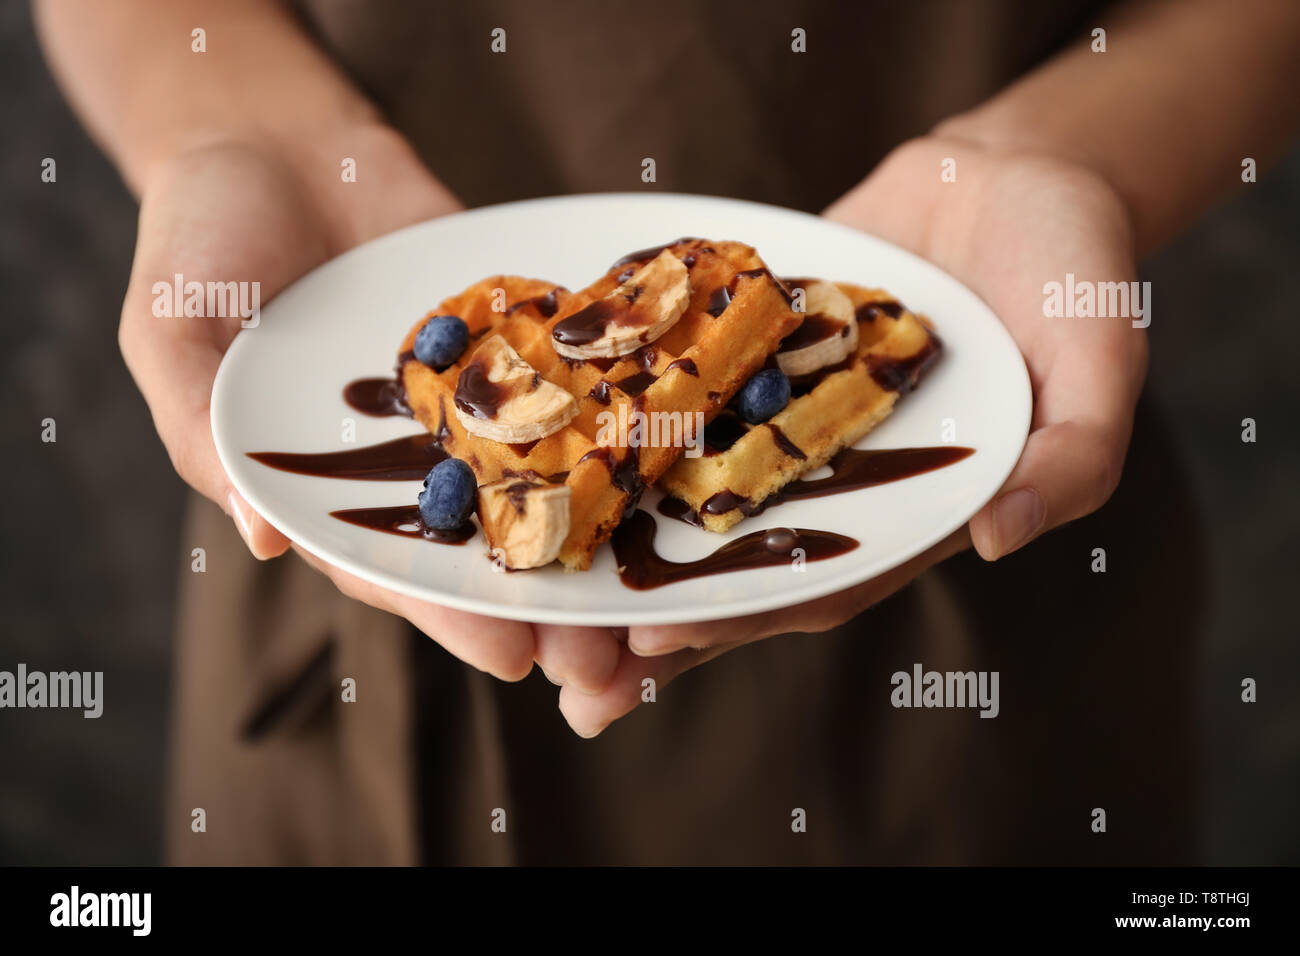 Woman holding plate with tasty waffles and berries, closeup - Stock Image